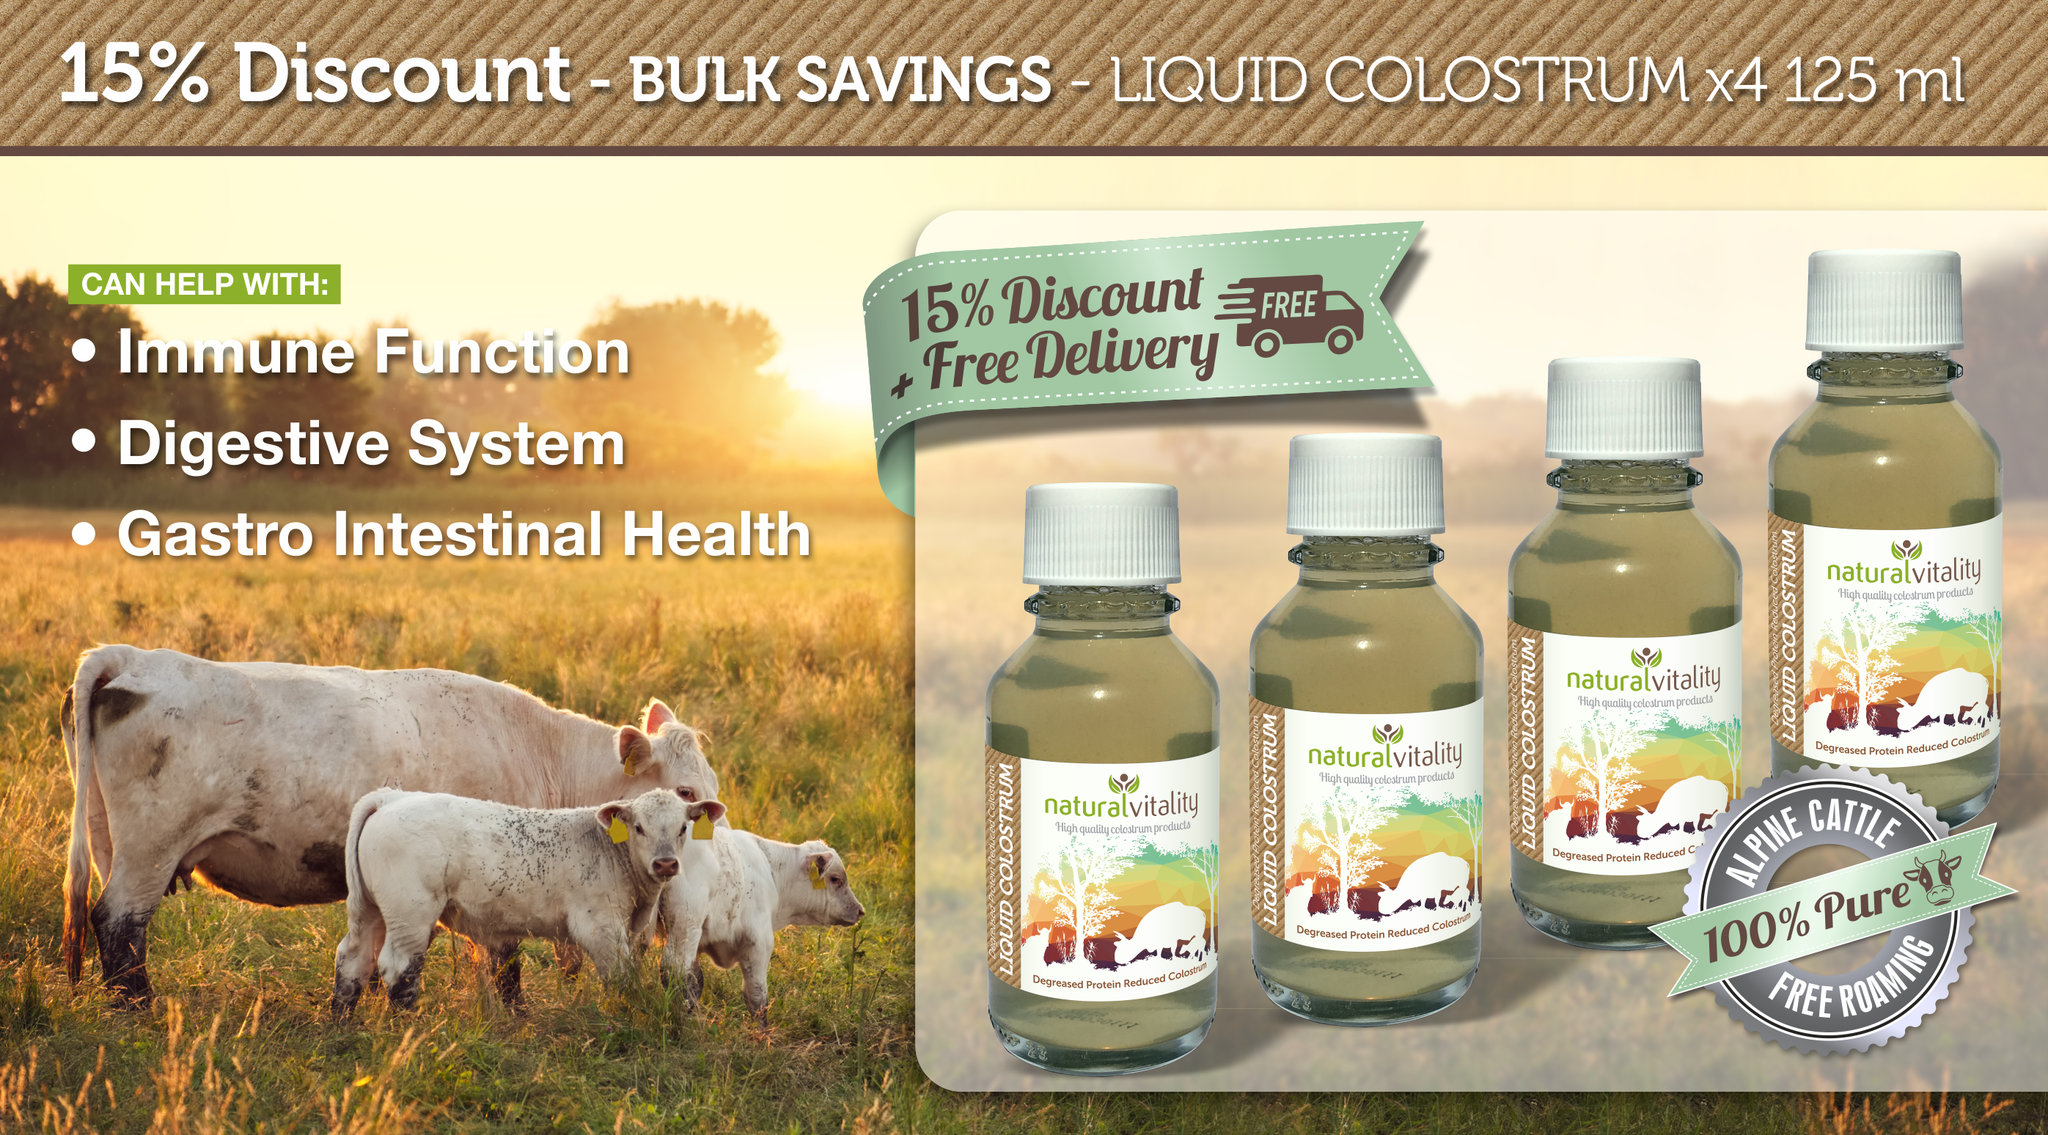 Bulk Discount on Liquid Colostrum by Natural Vitality